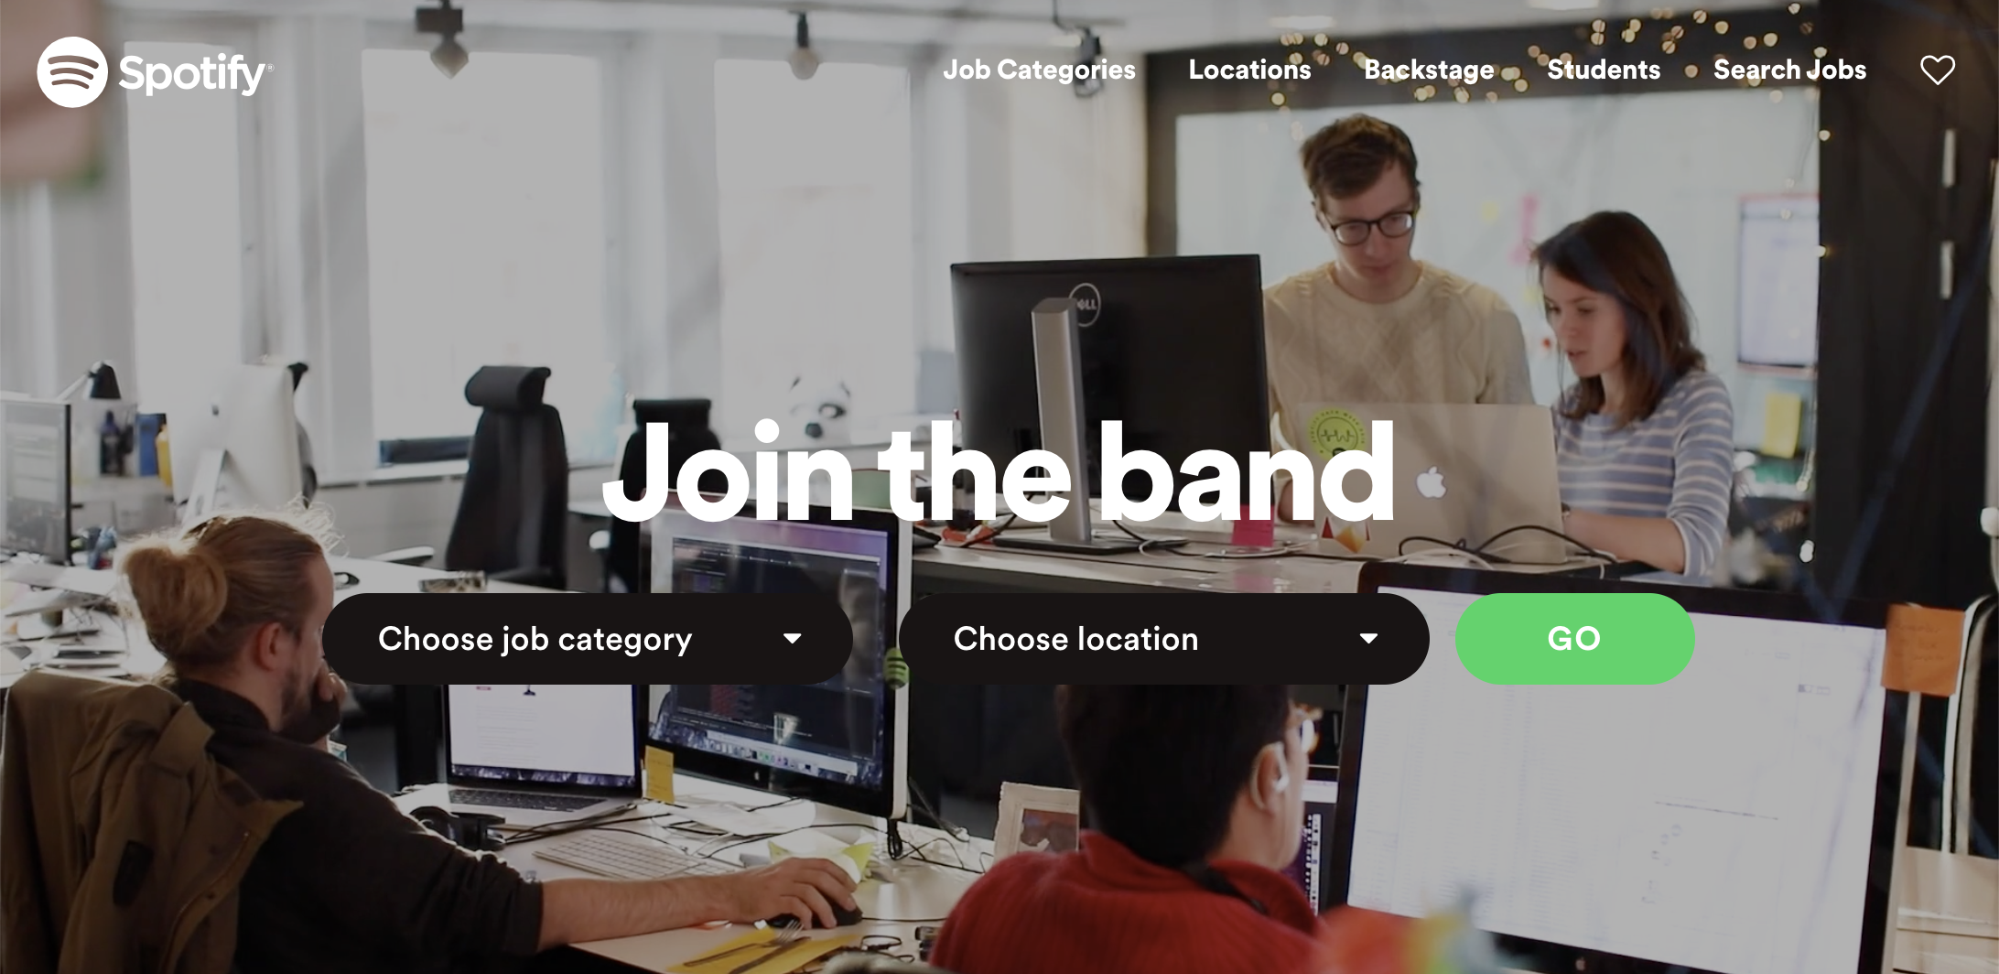 Spotify's employer brand is a play on the platform's music streaming services.